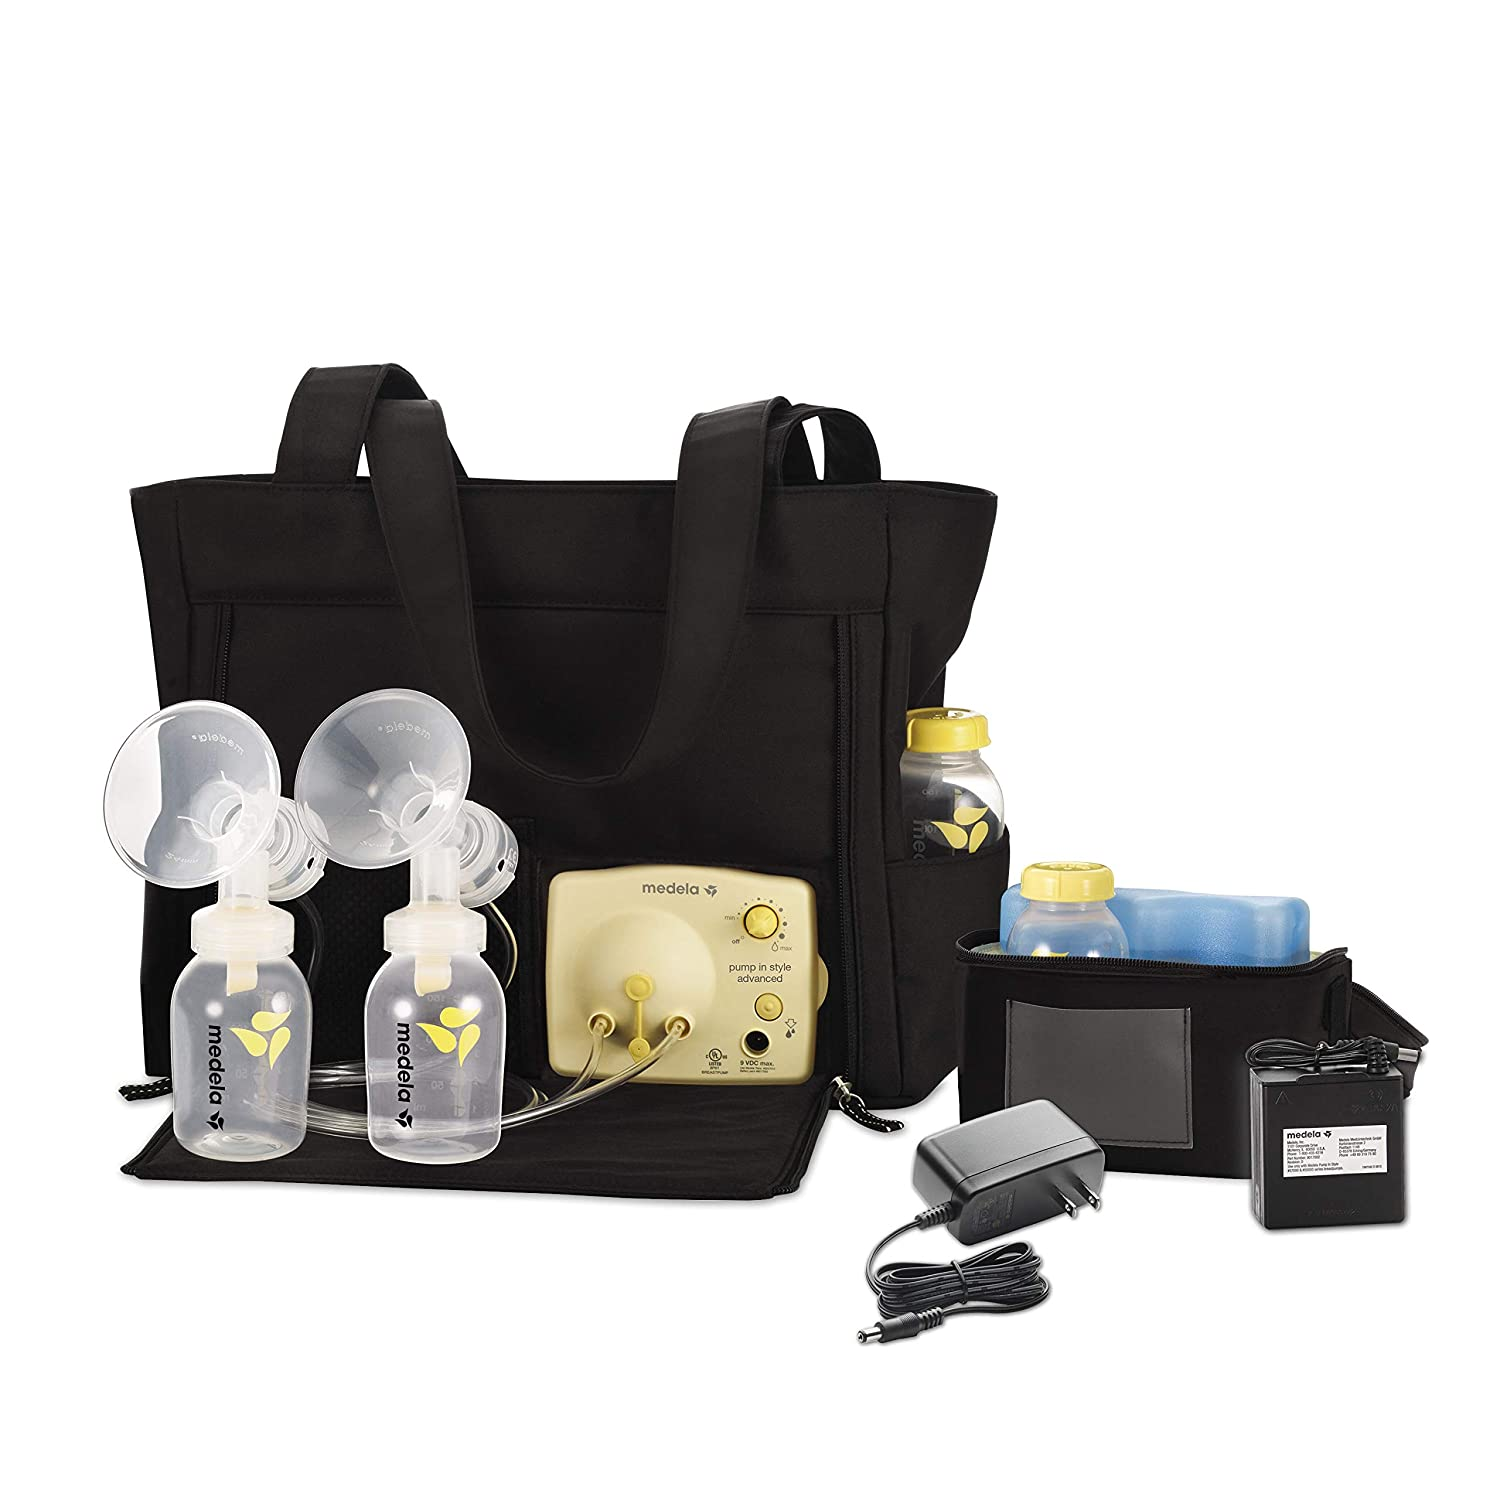 Medela Pump in Style Advanced Best Breast Pump